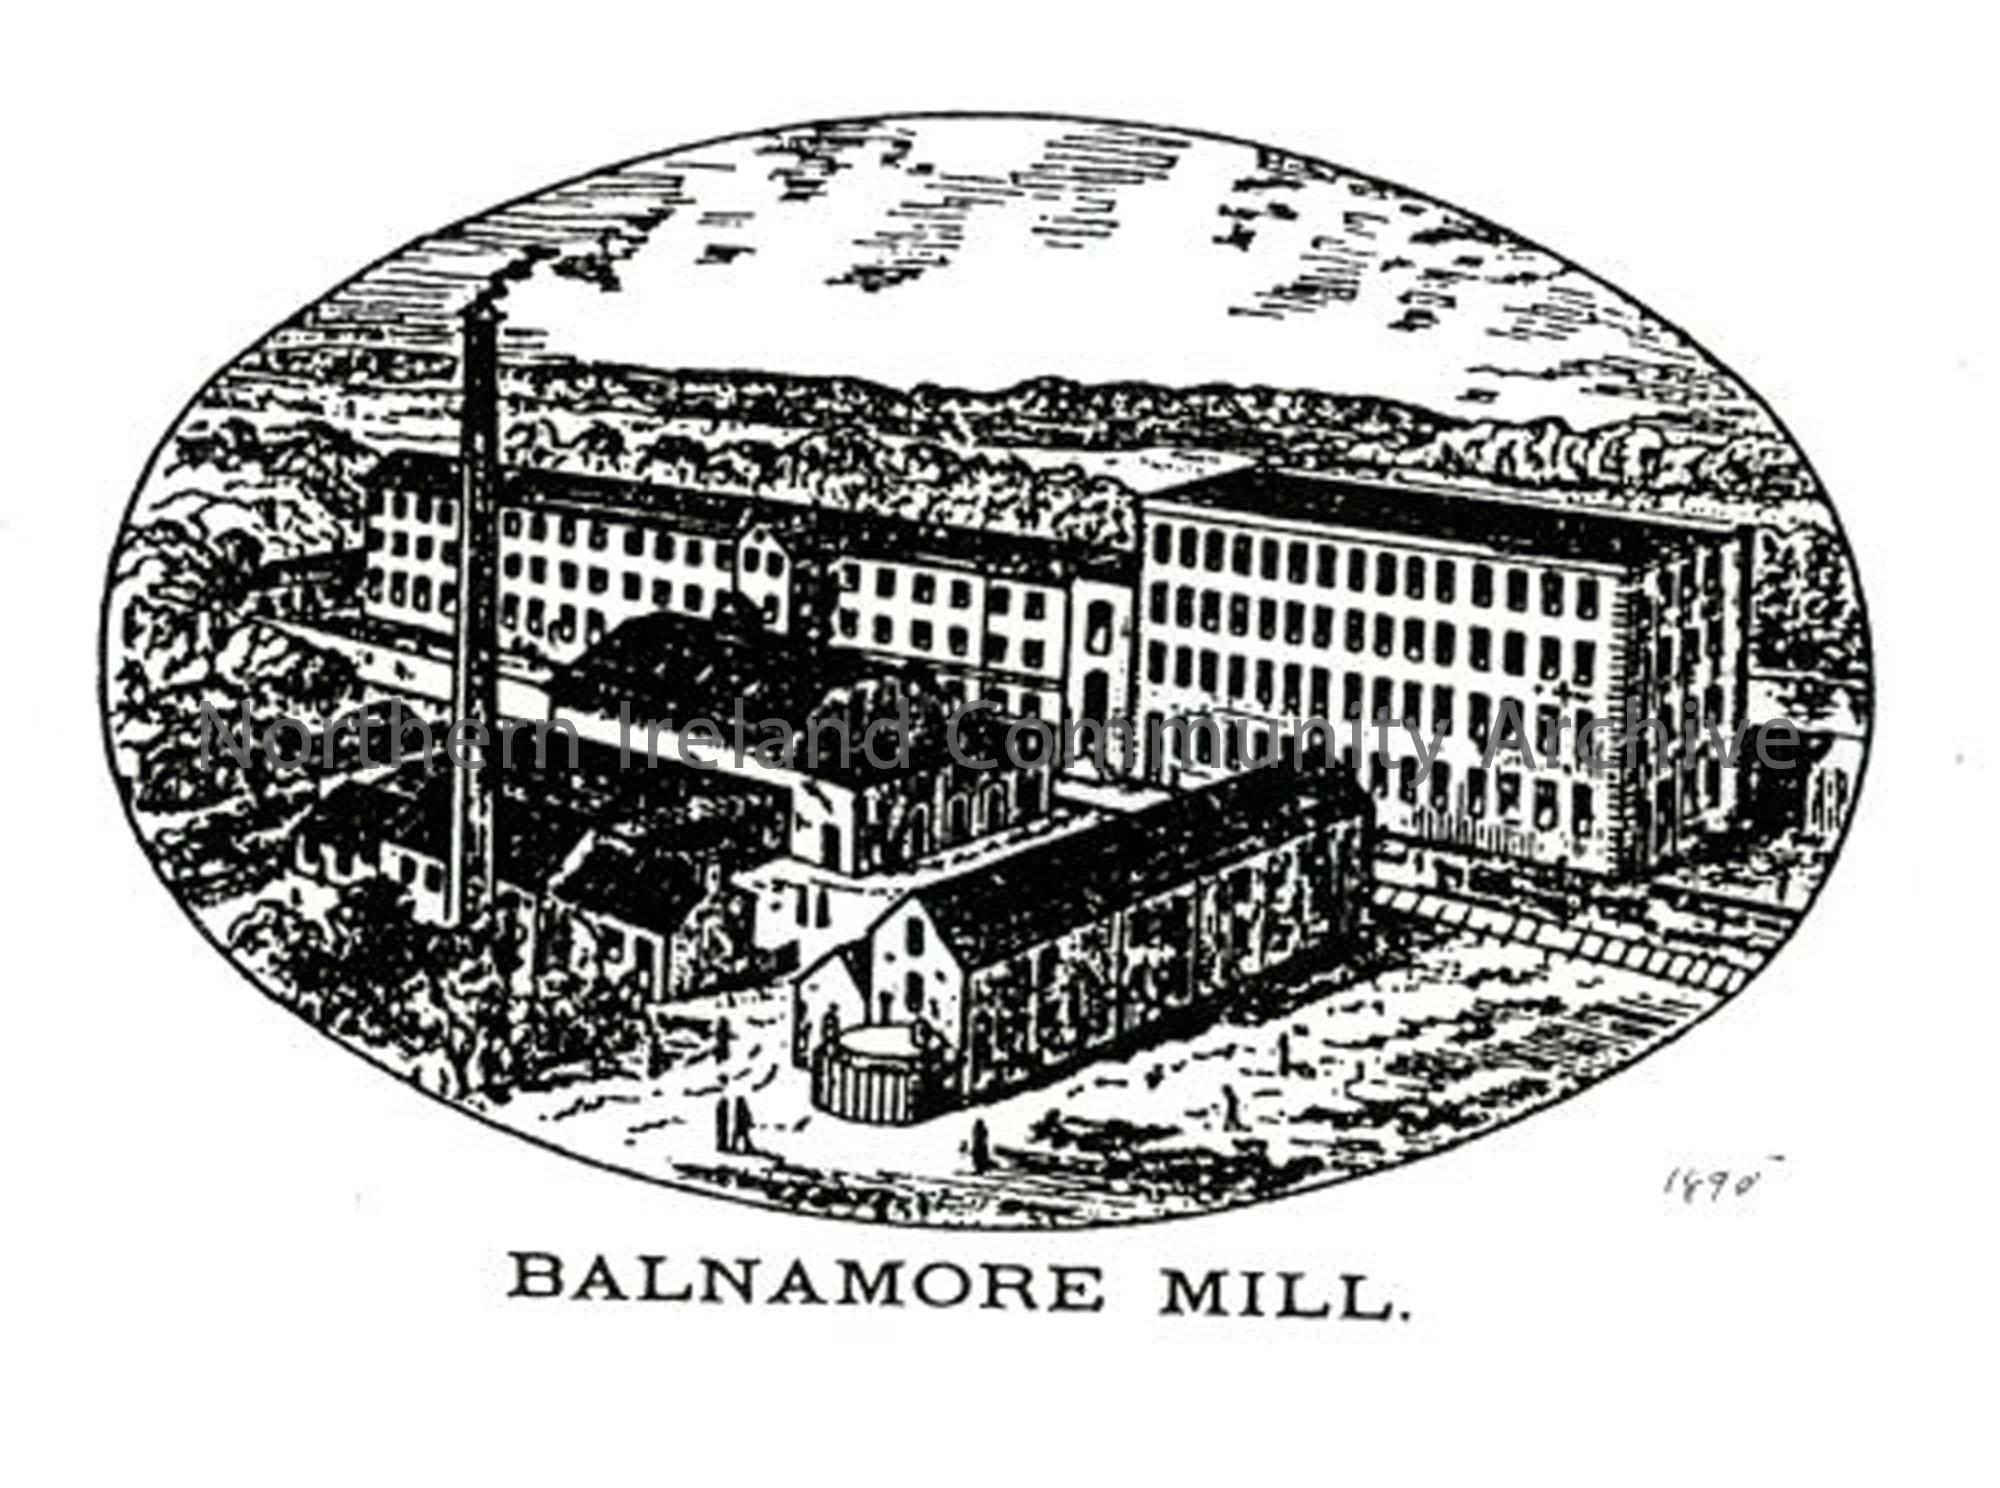 Illustration of Balnamore Mill from Bassett's Tour of Ireland 1888. Note the top storey and peaked roof of the new mill have not yet been added and the old mill still has three storeys. (5478)